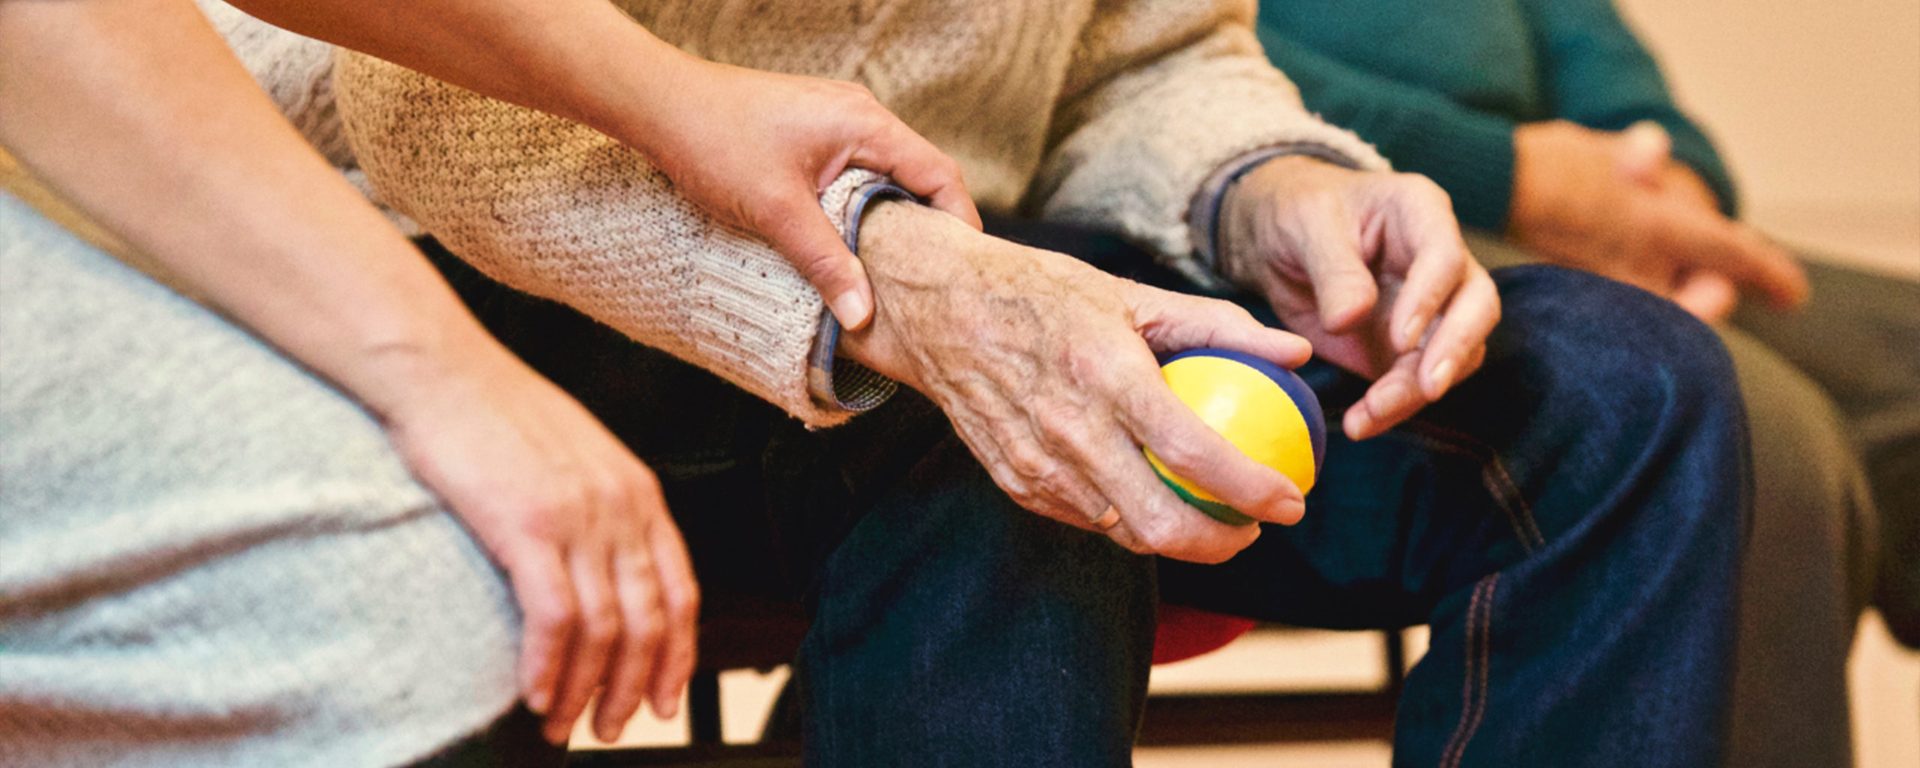 Use It or Lose It: Exercise Therapy Can Ease Arthritic Pain